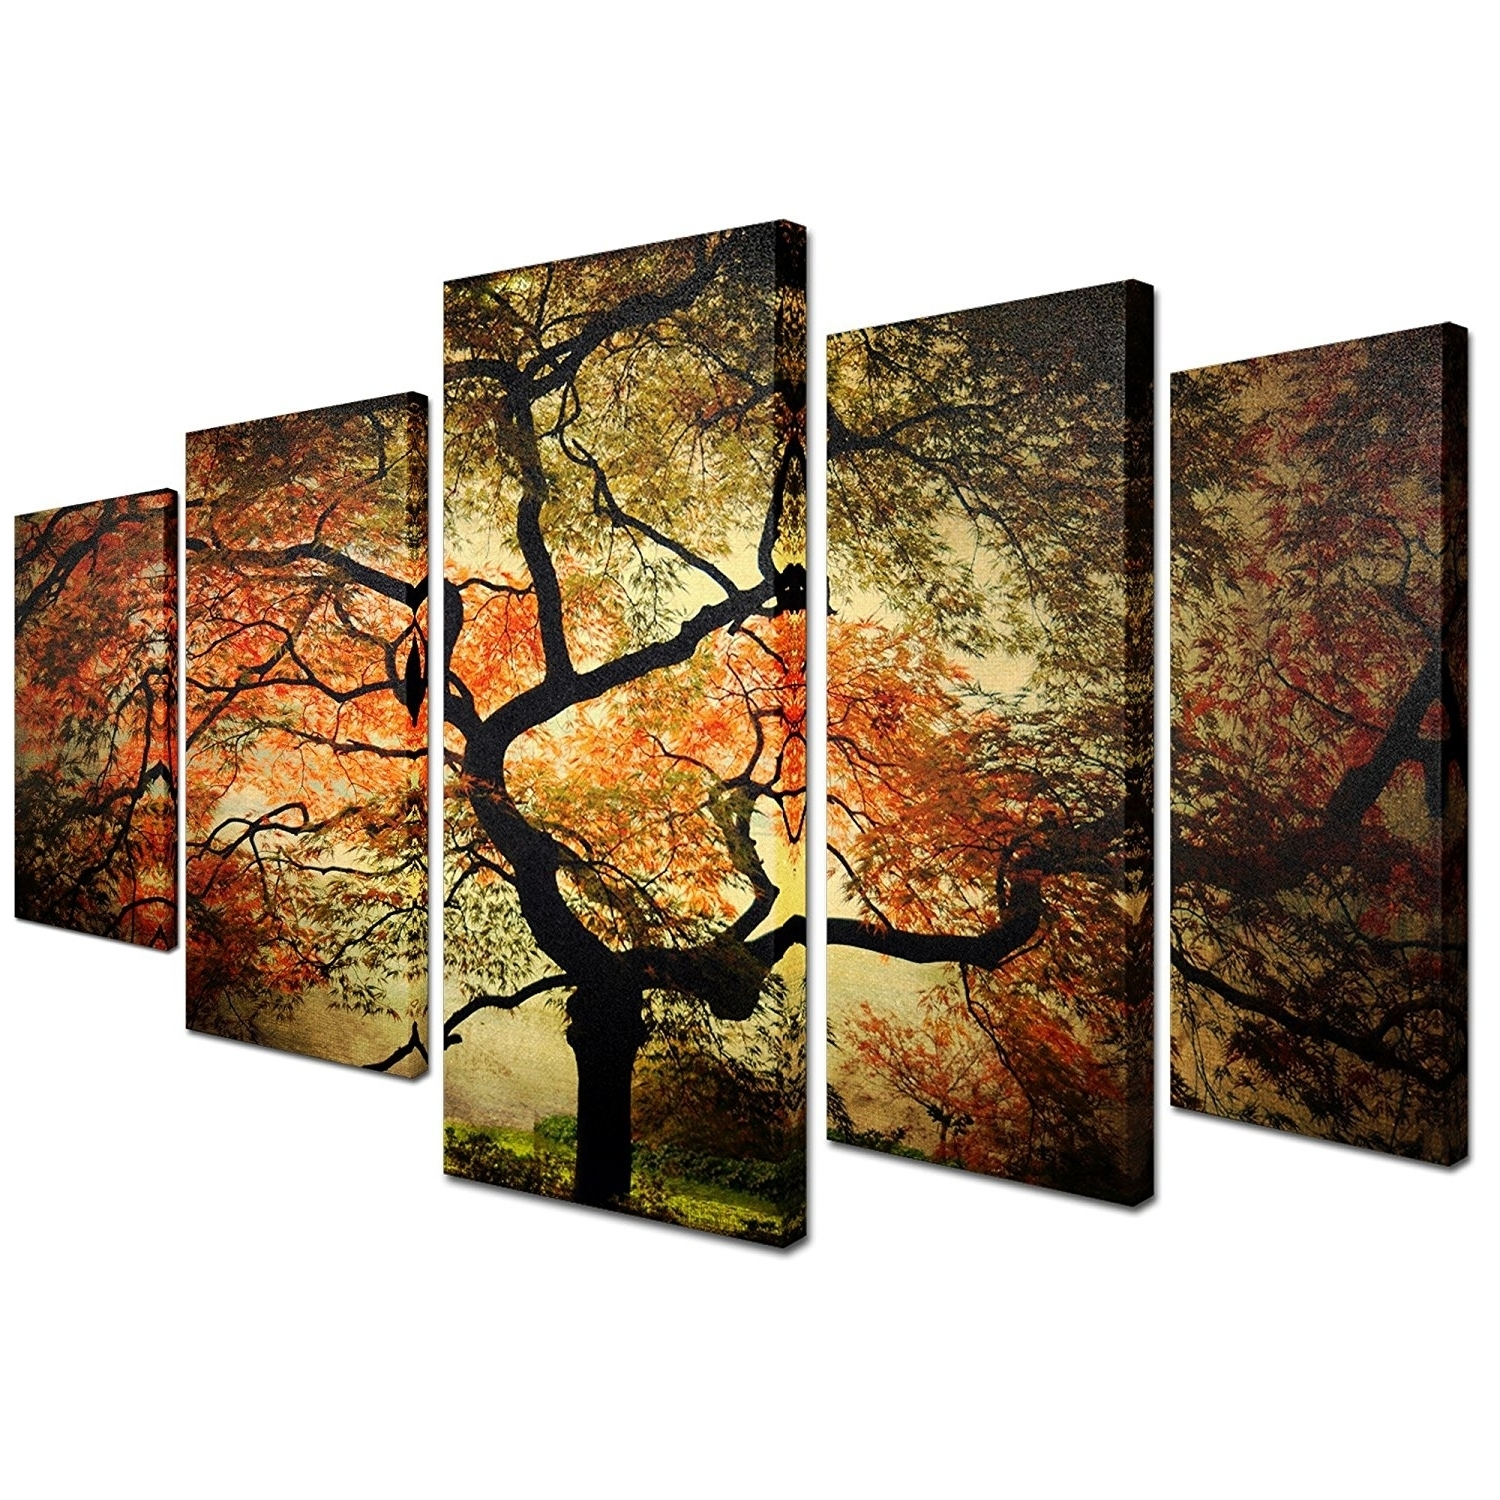 Multi Piece Canvas Wall Art In Amazon Trademark Fine Art Japanese with regard to Multi Piece Wall Art (Image 11 of 20)